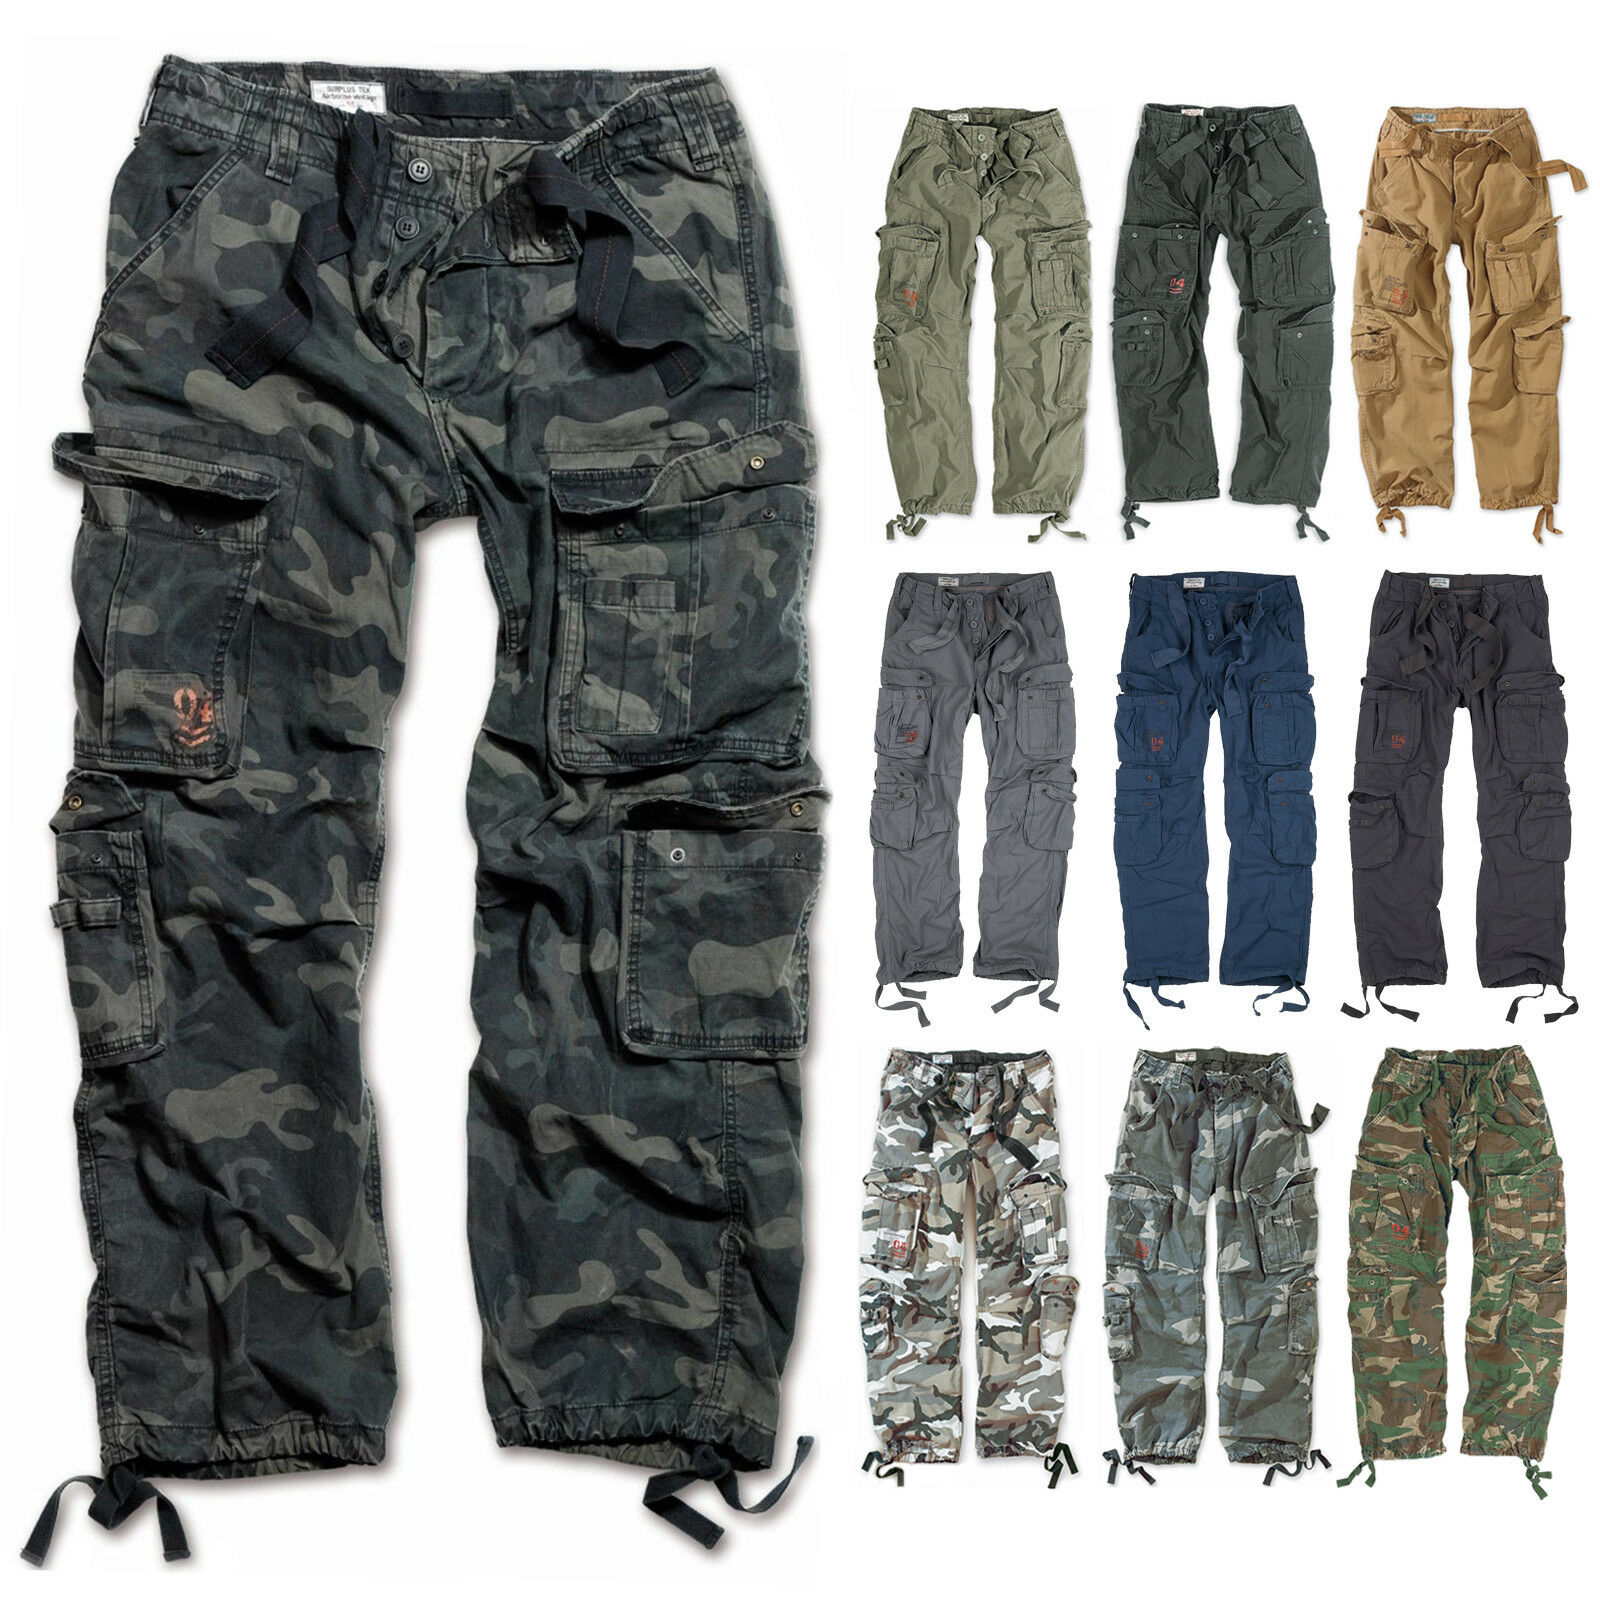 SURPLUS CARGO HOSE AIRBORNE VINTAGE Trousers Streetwear Pants US Army Forces